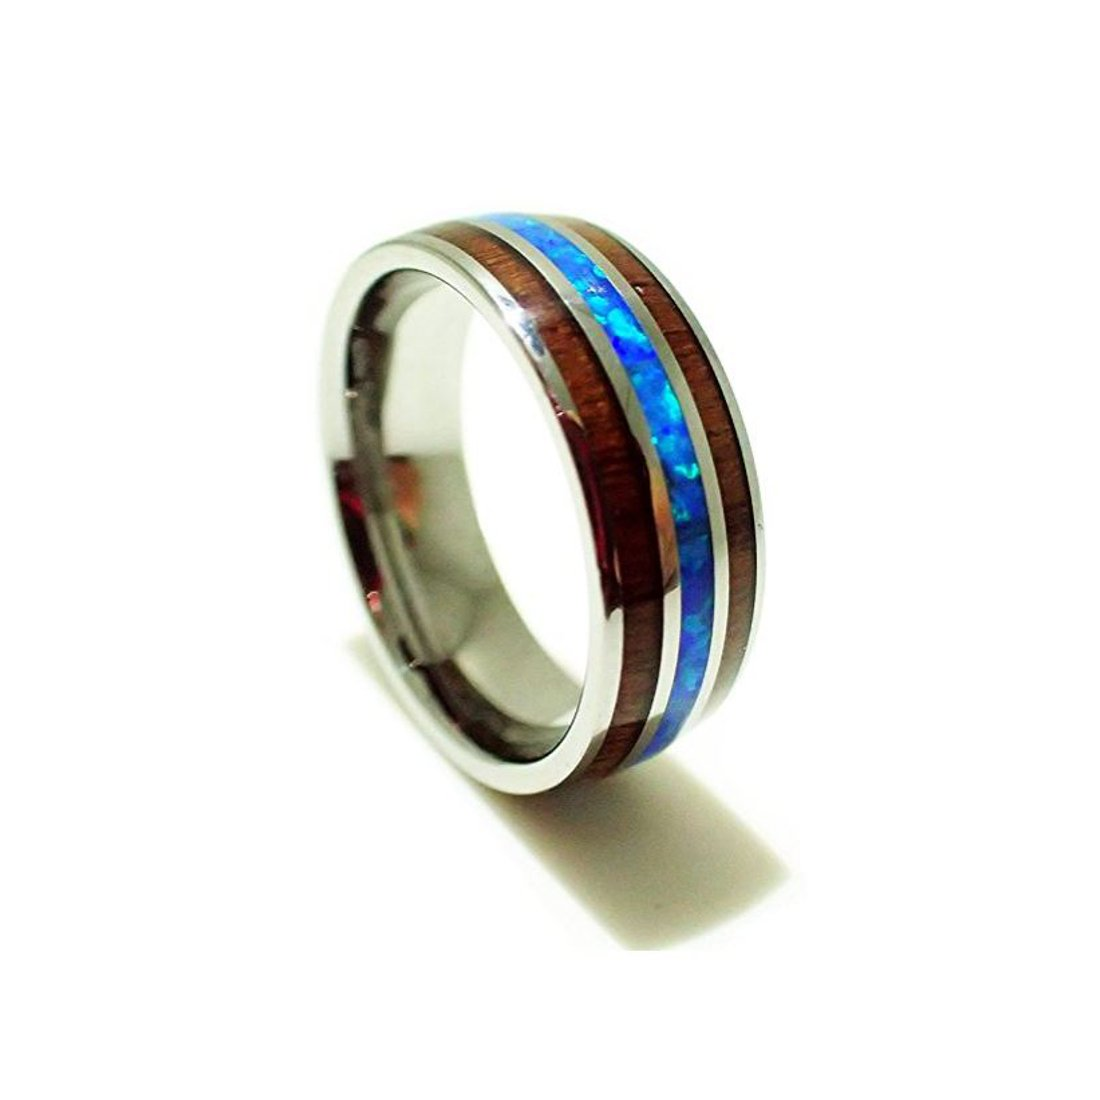 Size 8 Tungsten Carbide Koa Wood Synthetic Opal Confort Fit Ring/Wedding Band (8mm)